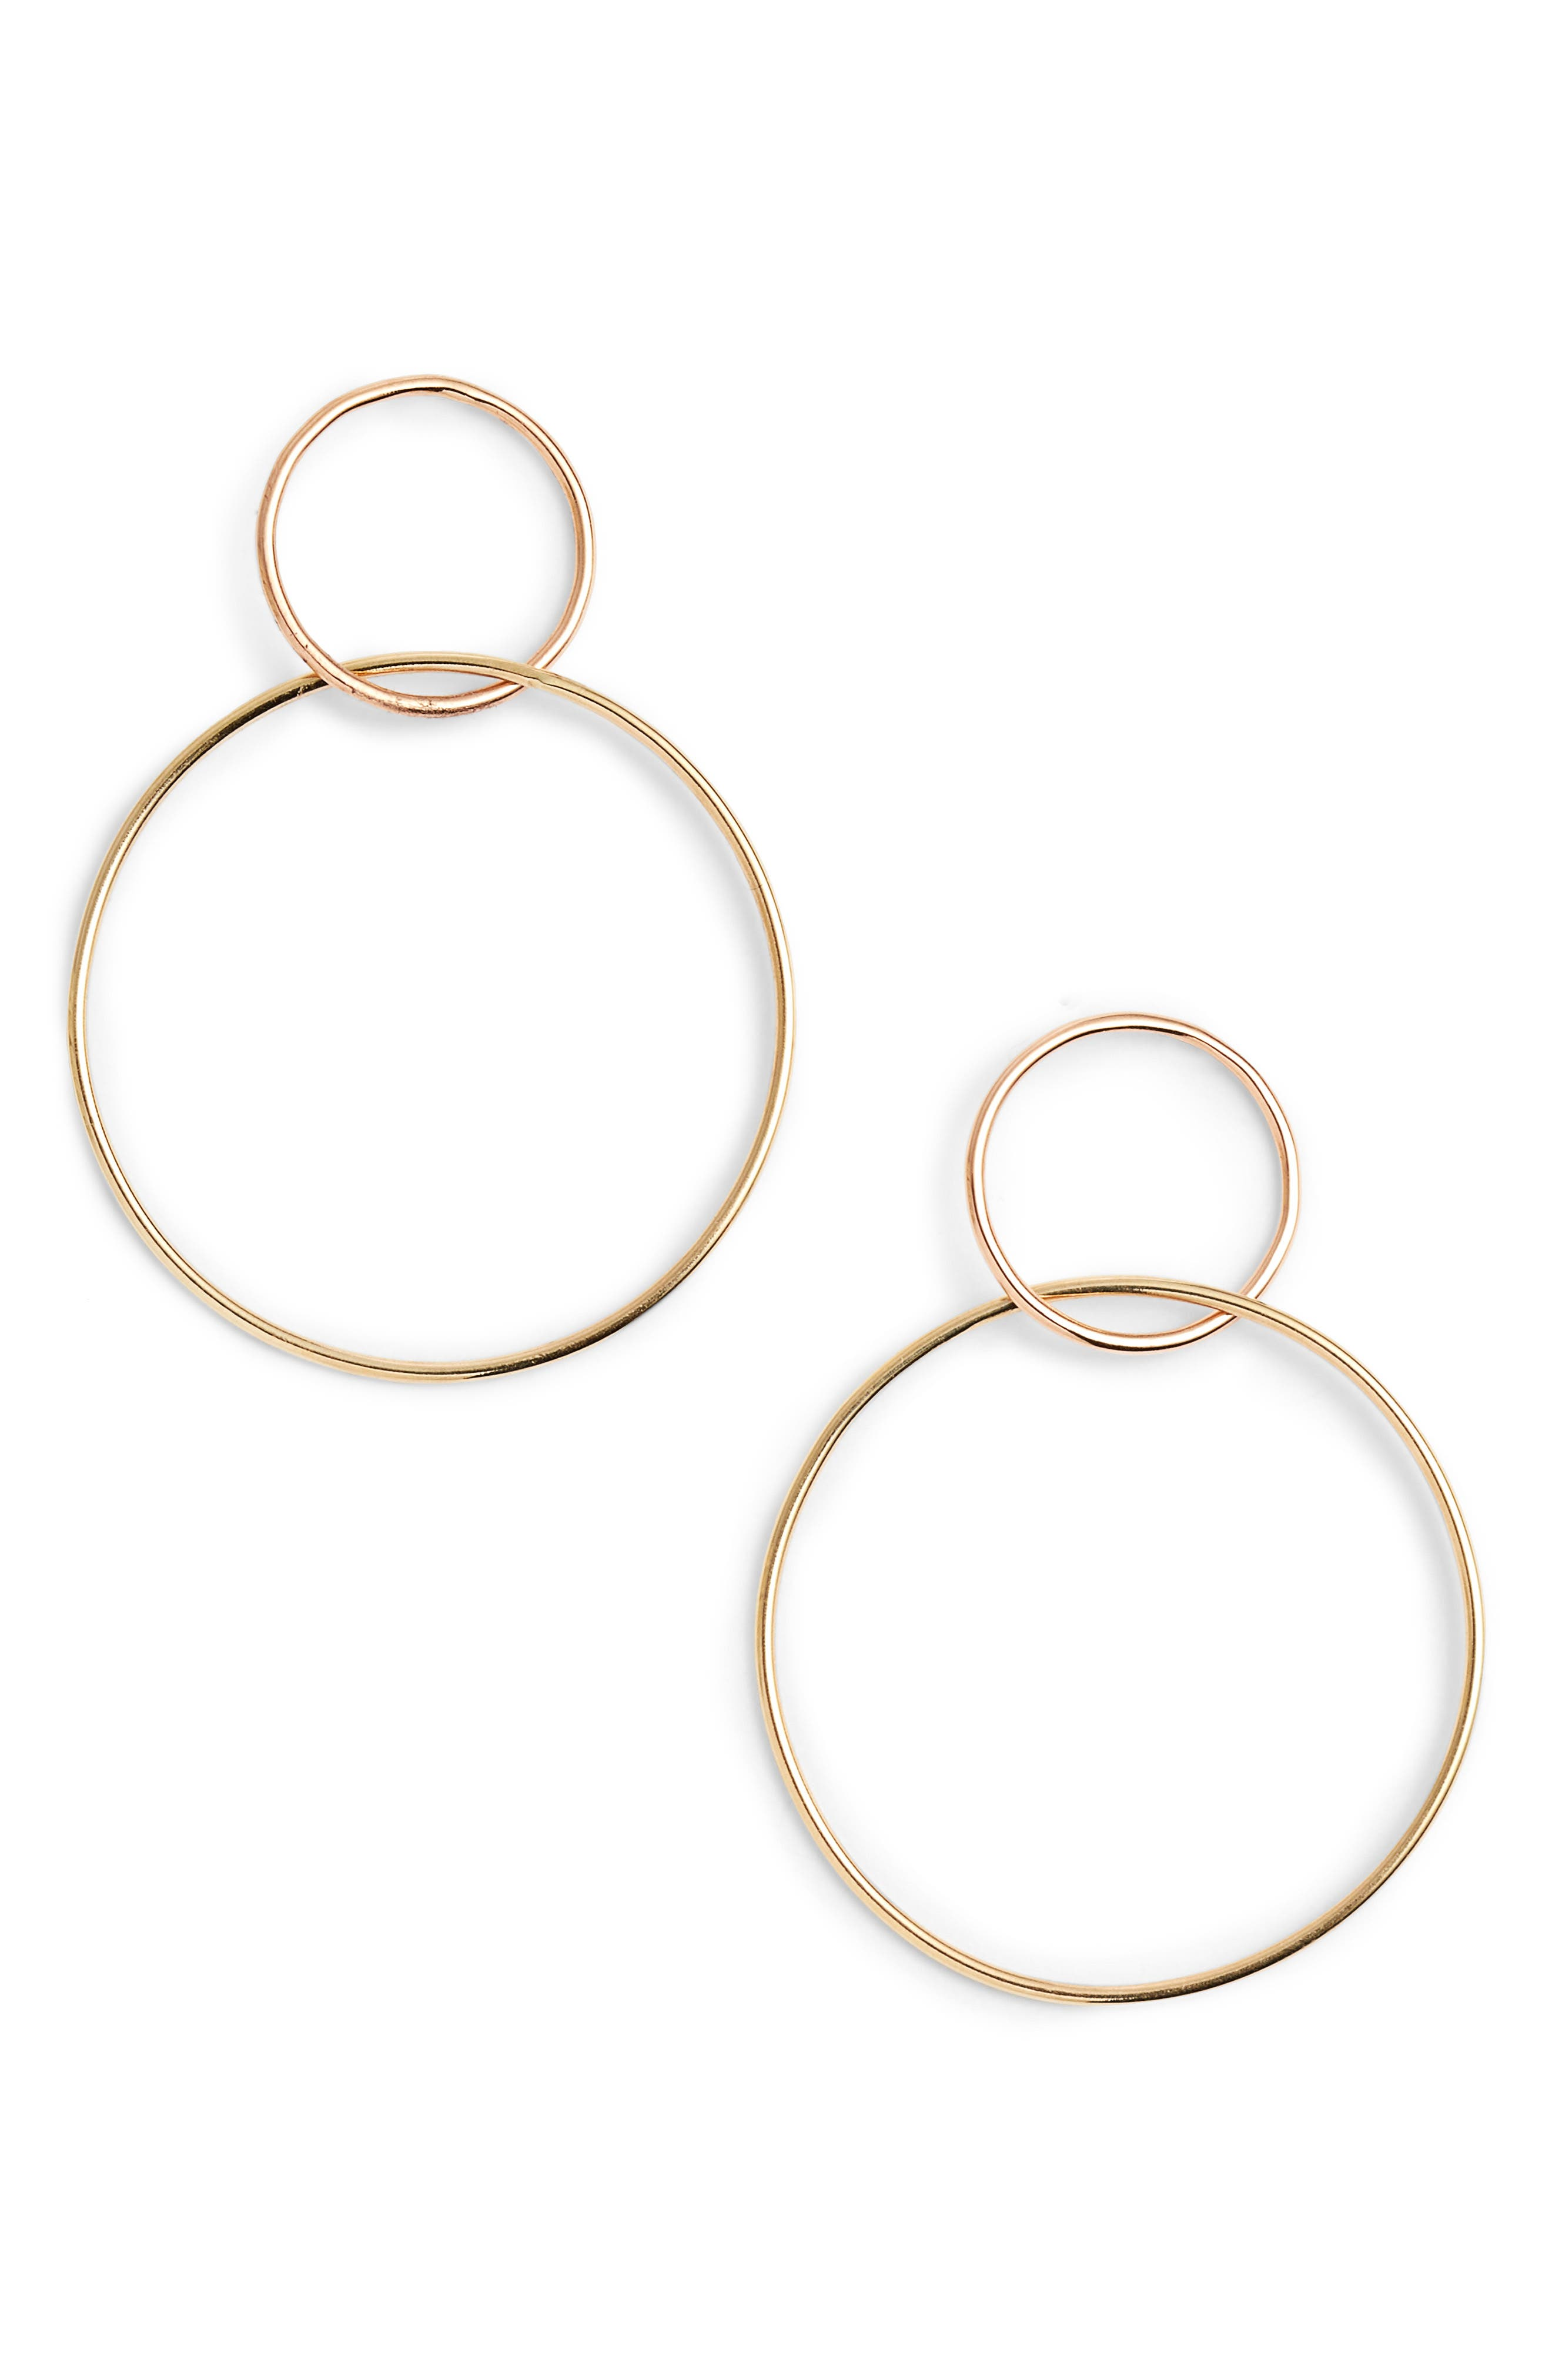 Two Tone Double Loop Earrings,                         Main,                         color, Yellow Gold/ White Gold